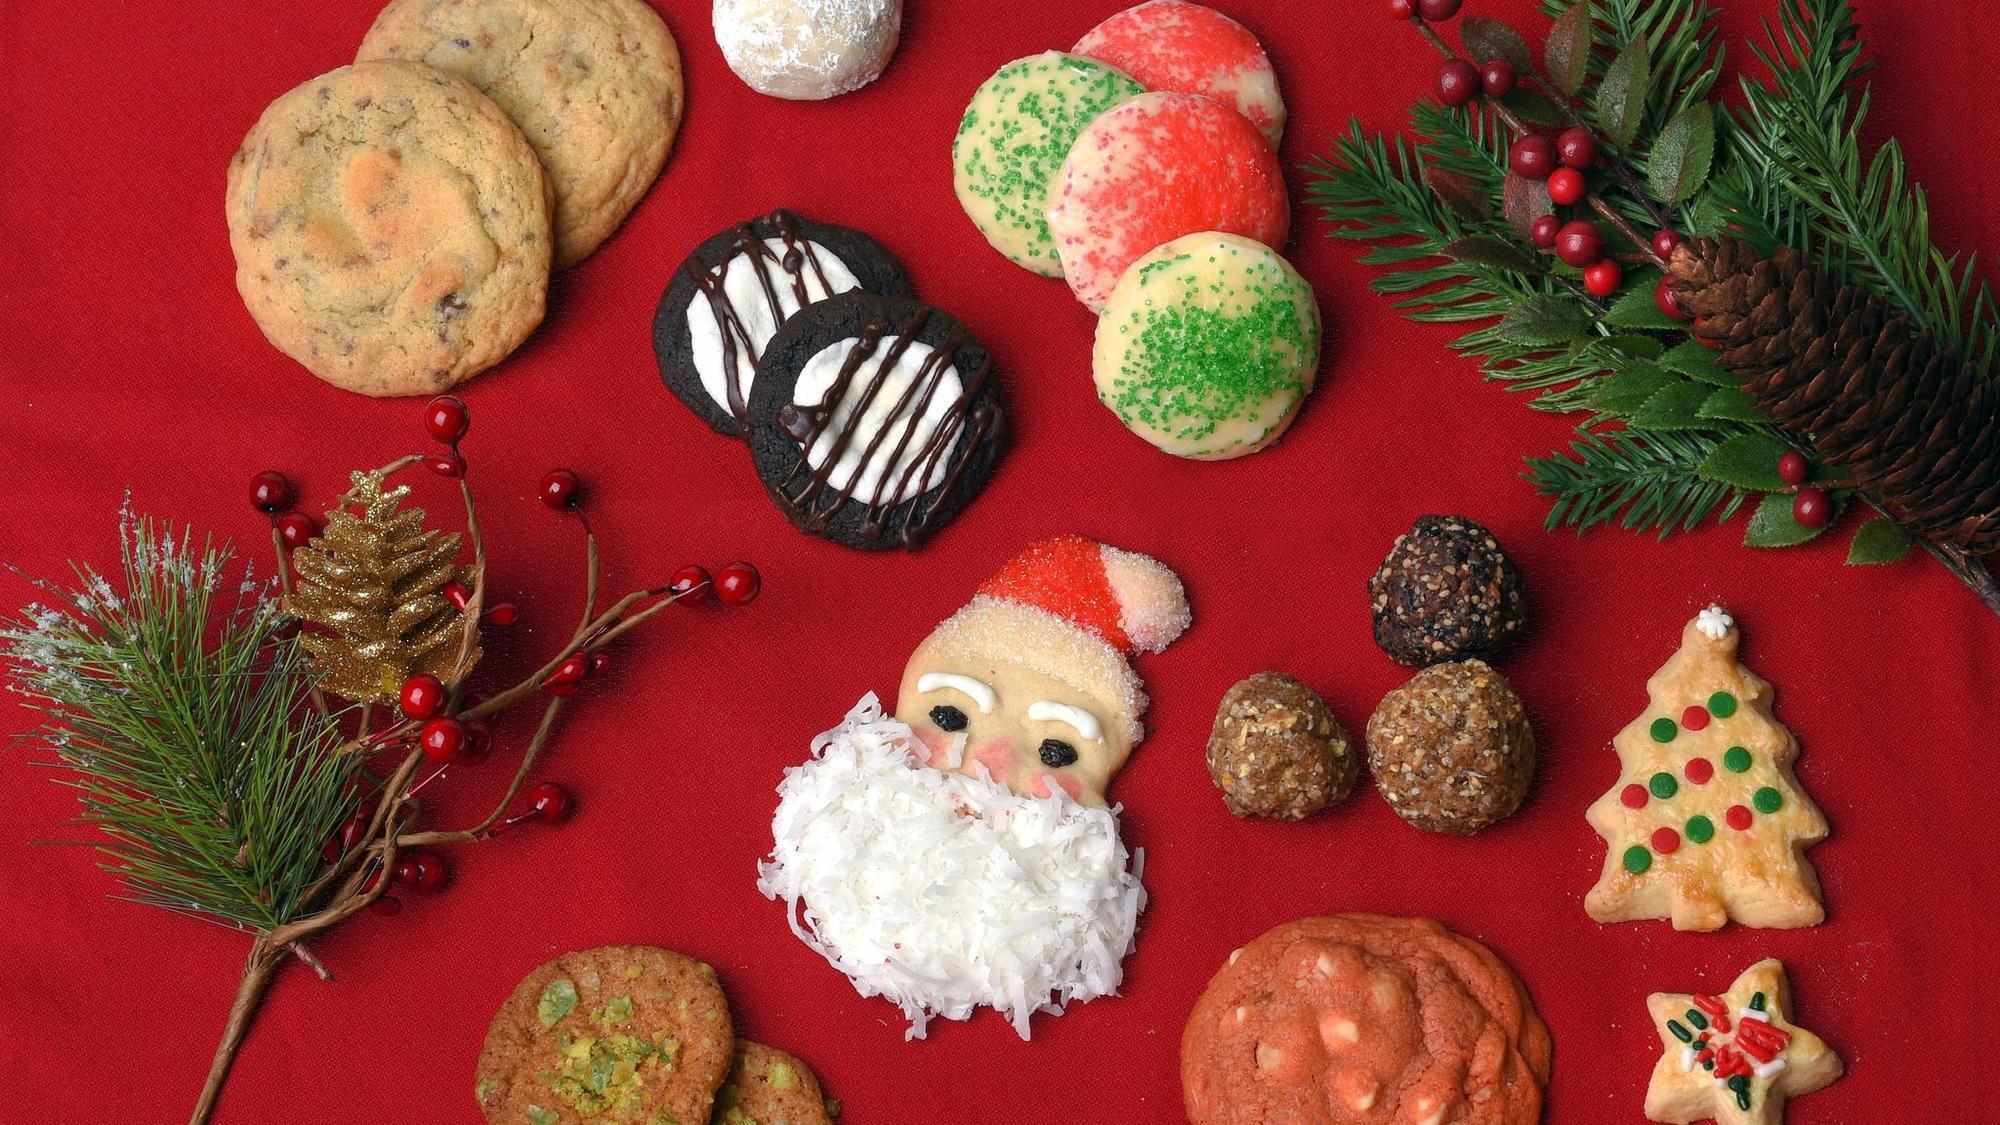 baltimores best holiday cookie recipes for 2017 baltimore sun - Christmas In Baltimore